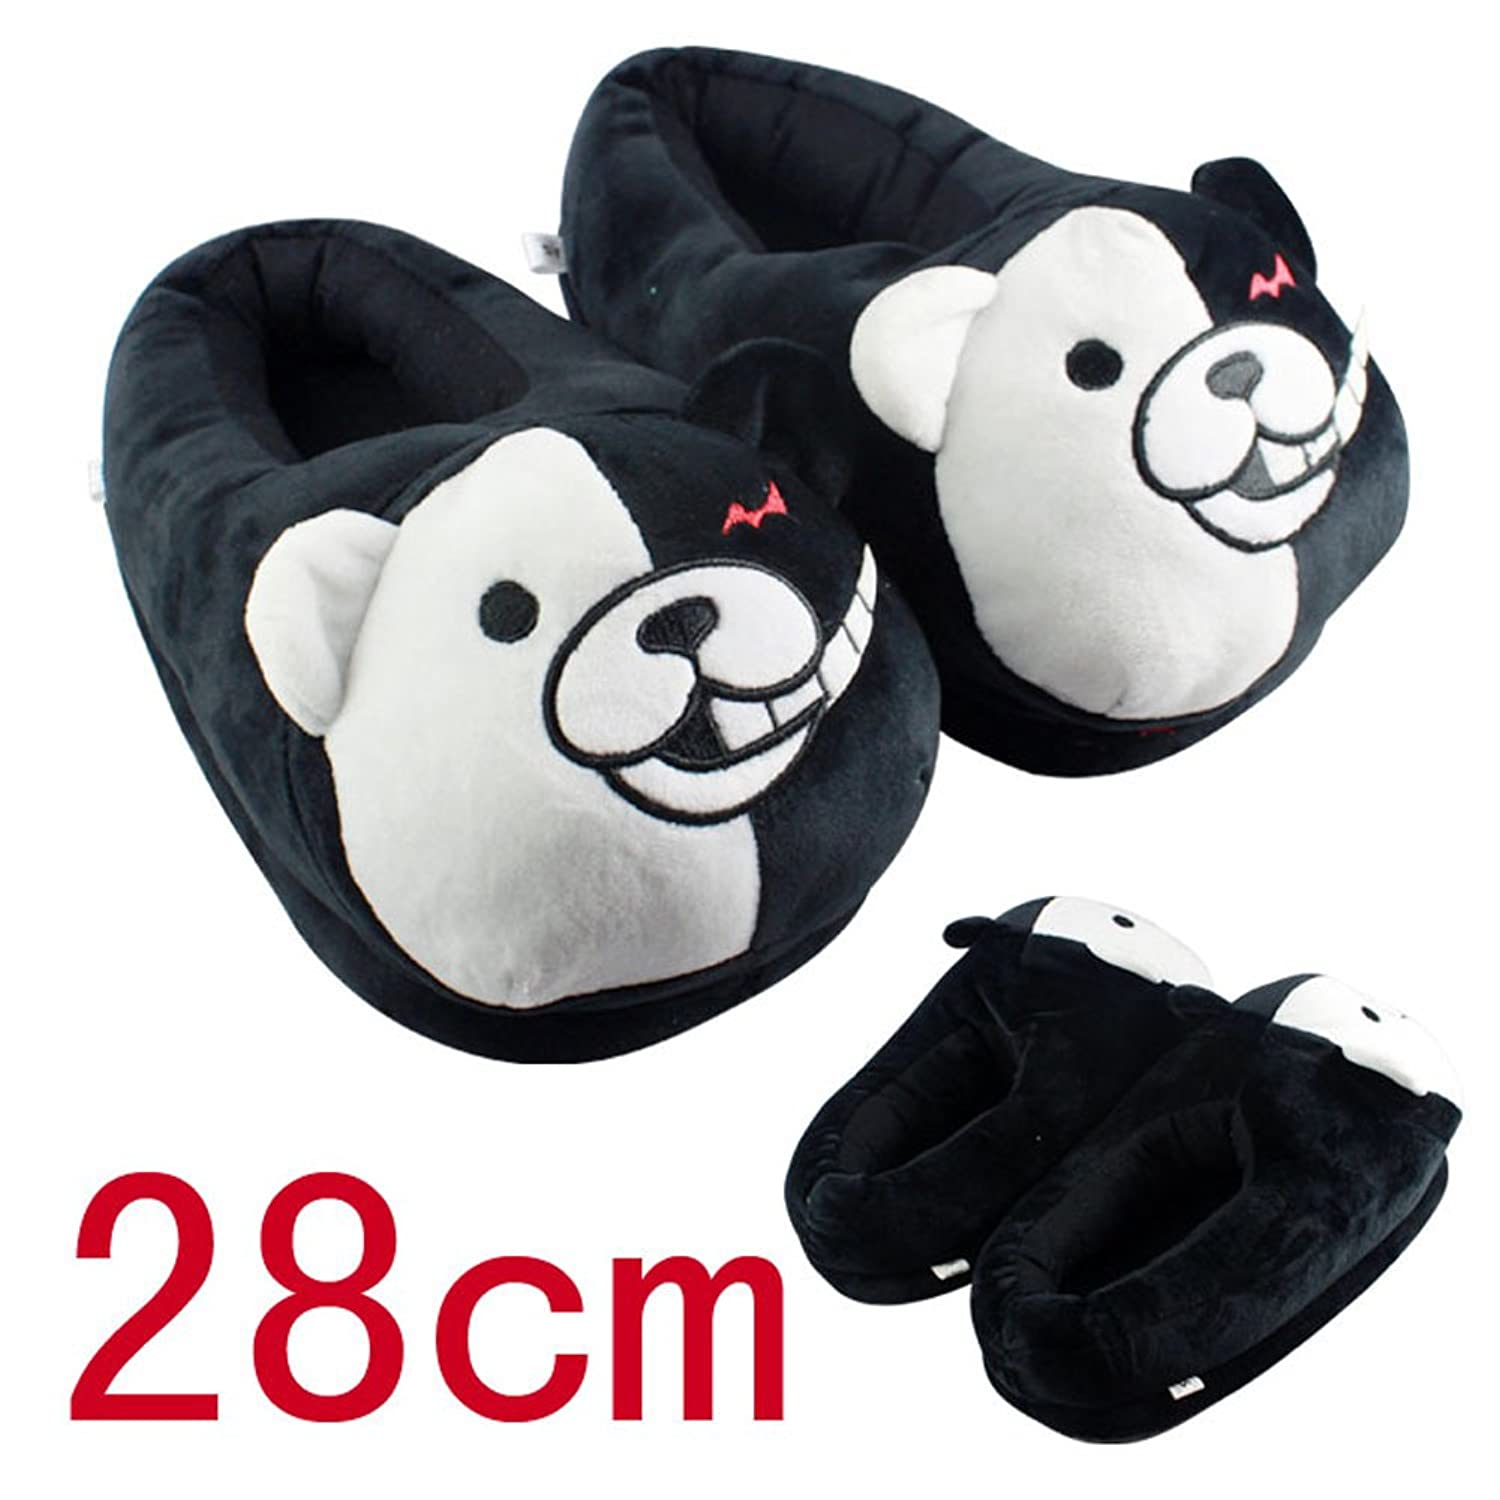 "<a href=""/cdn-cgi/l/email-protection"" class=""__cf_email__"" data-cfemail=""5b1e753a1b363a29303e2f"">[email protected]</a> Trigger Happy Havoc Winter Warm Home Floor Plush Slippers"